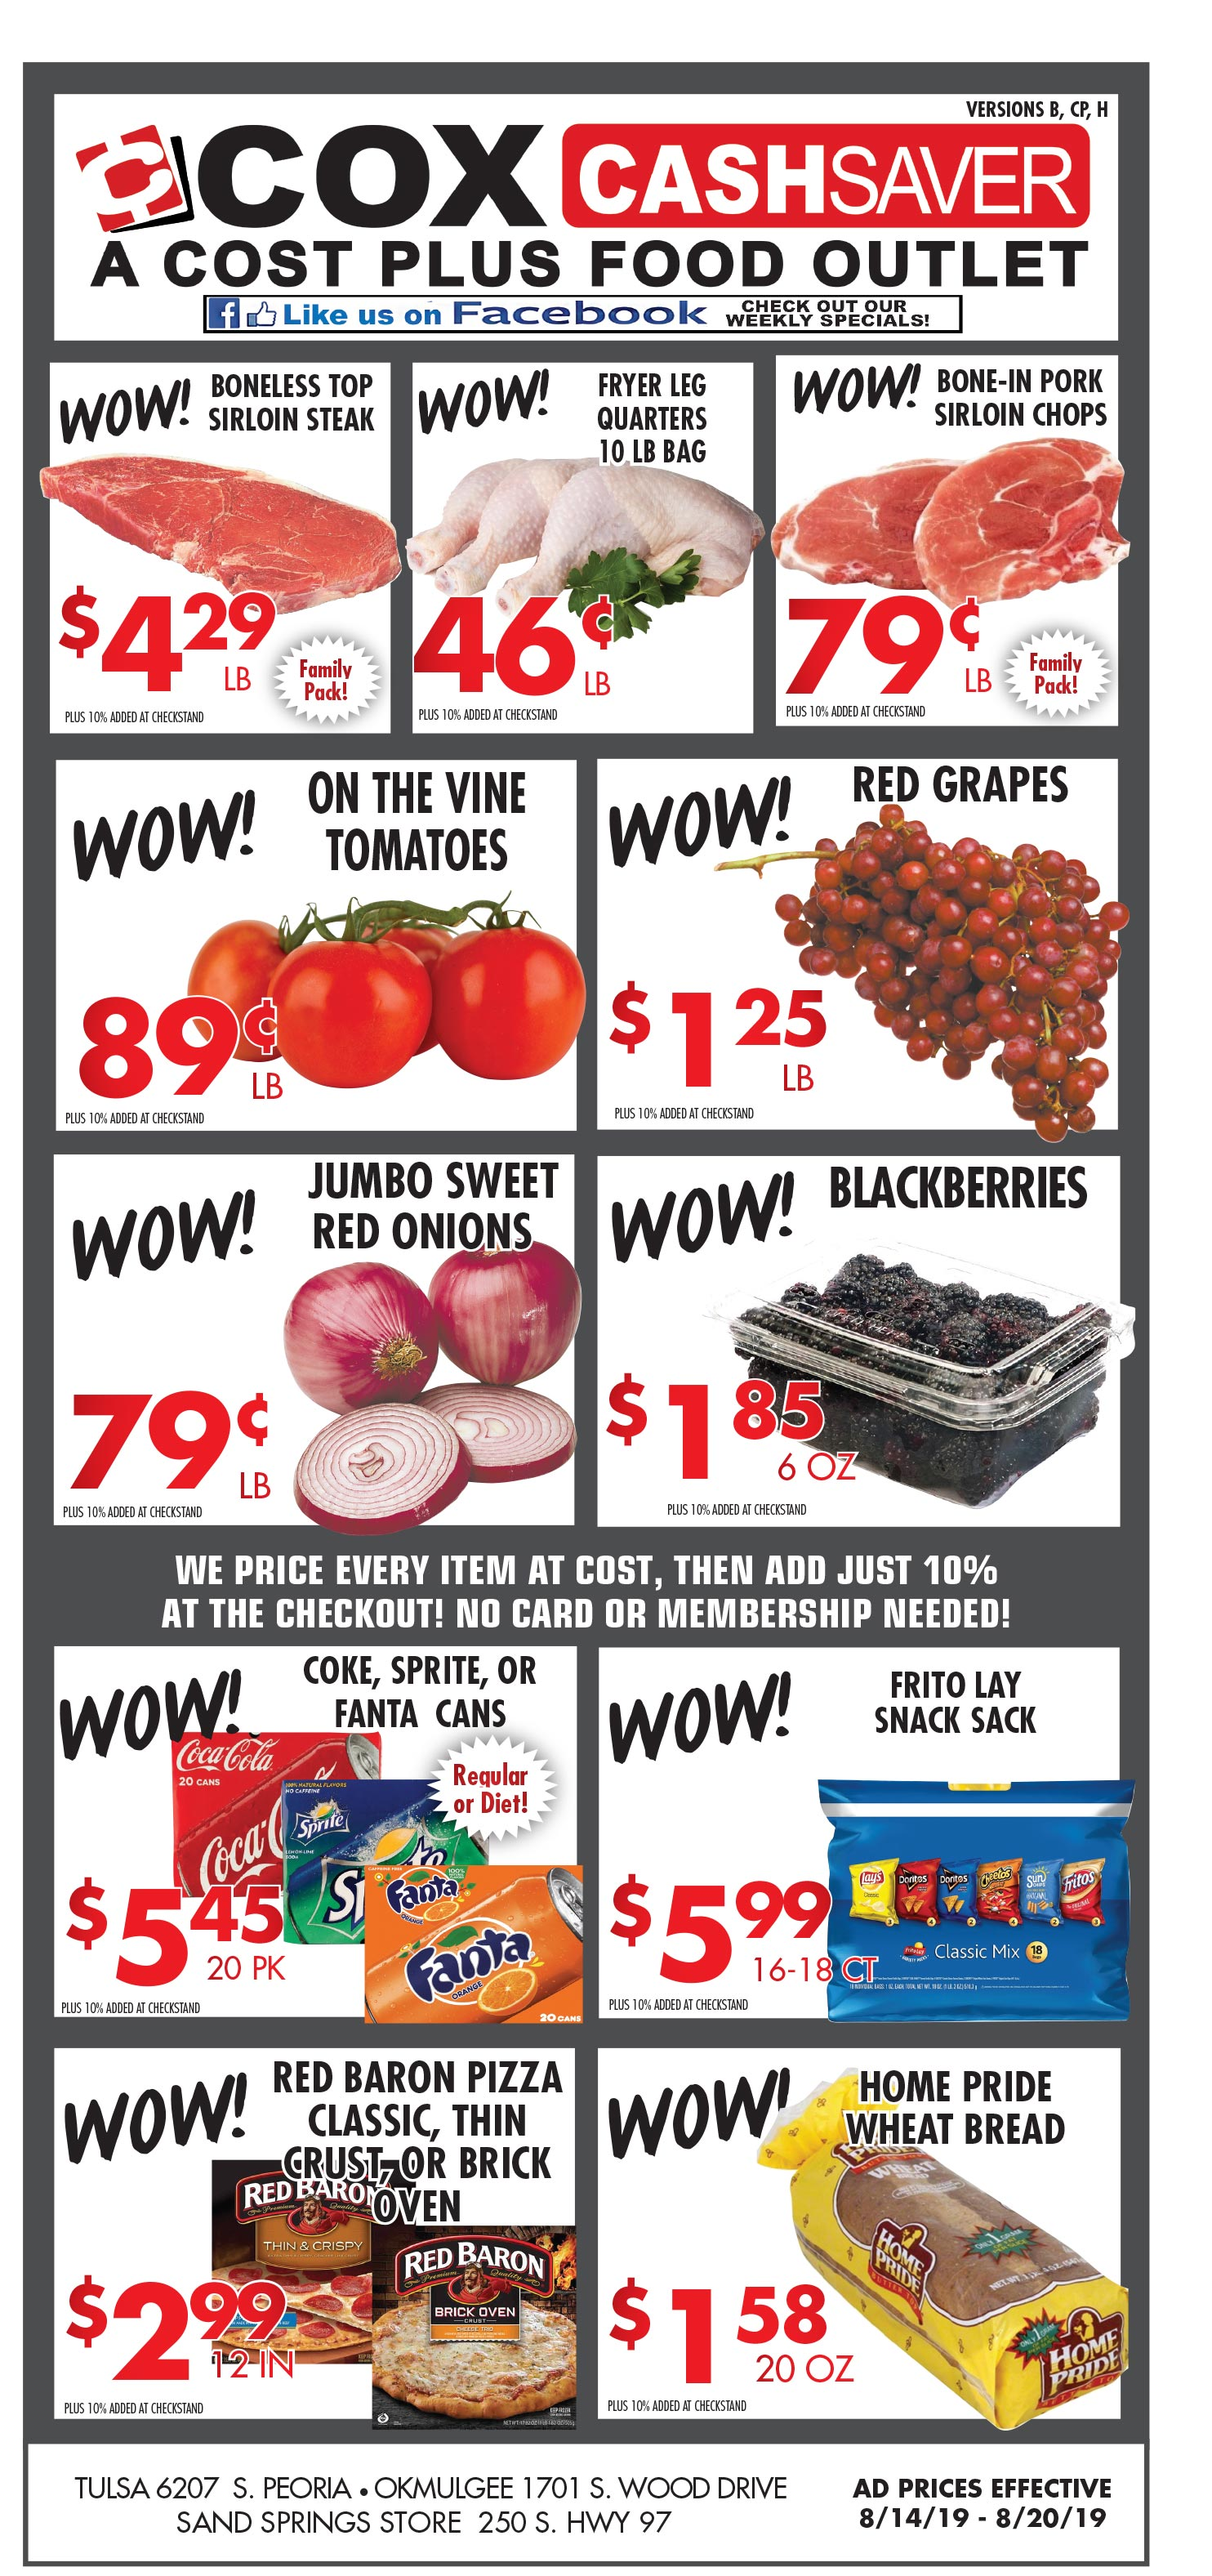 Cash Saver specials for week of 8-14-19